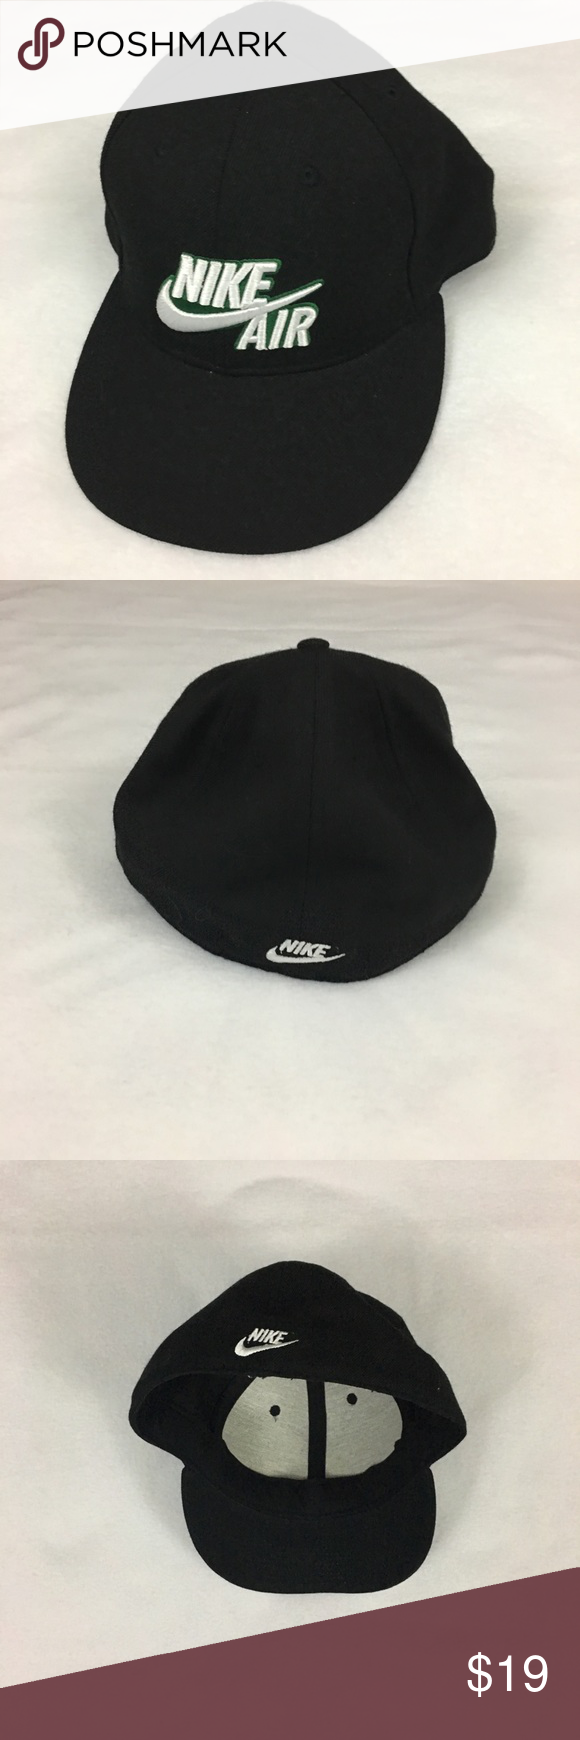 6abd2ea87b0 Vintage Mens Nike Air 643 Fitted Baseball Cap Hat Good used condition! One  size fits